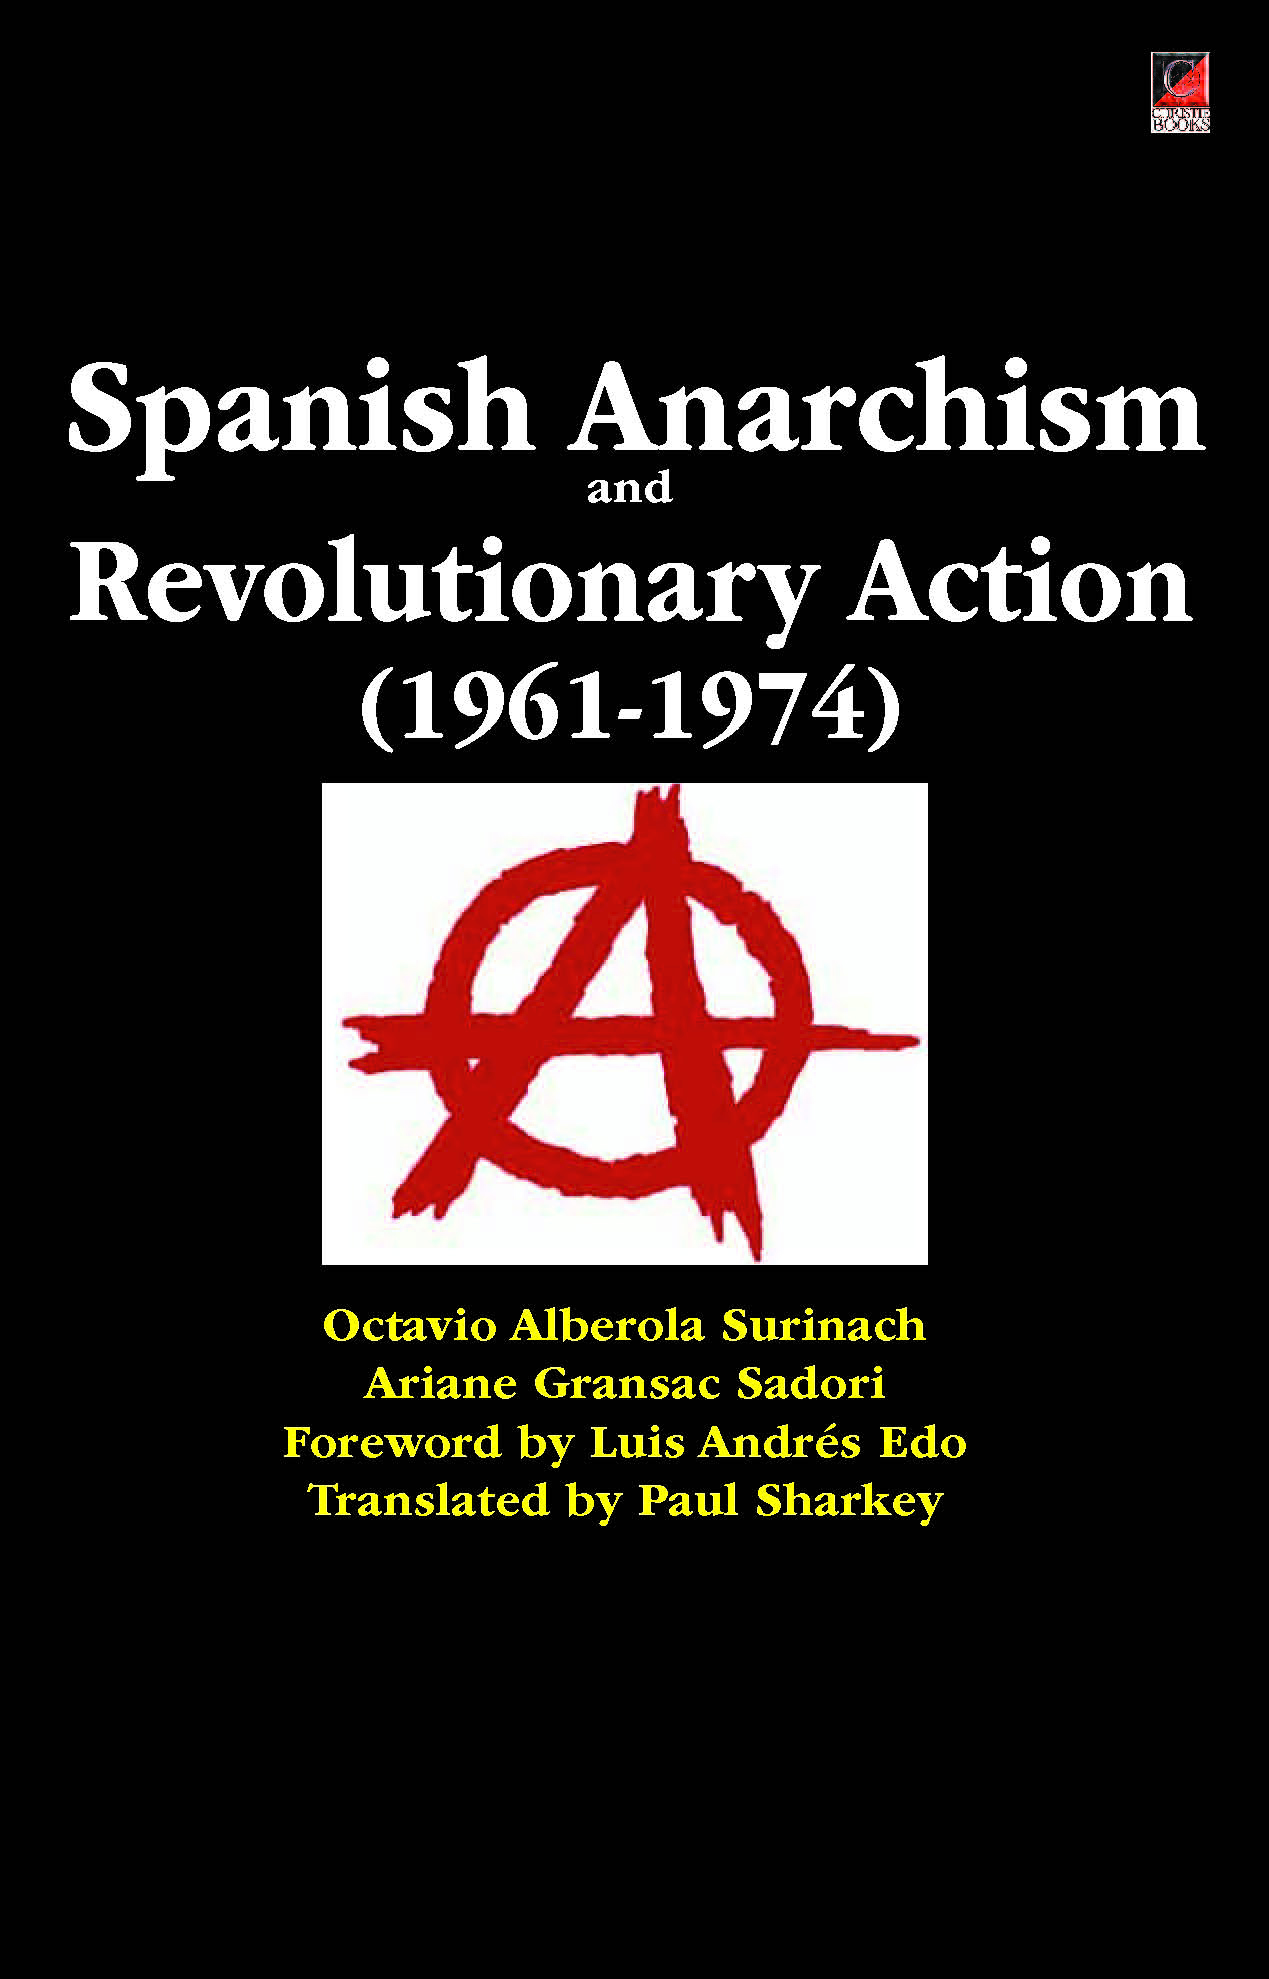 SPANISH ANARCHISM and Revolutionary Action (1961-1974)